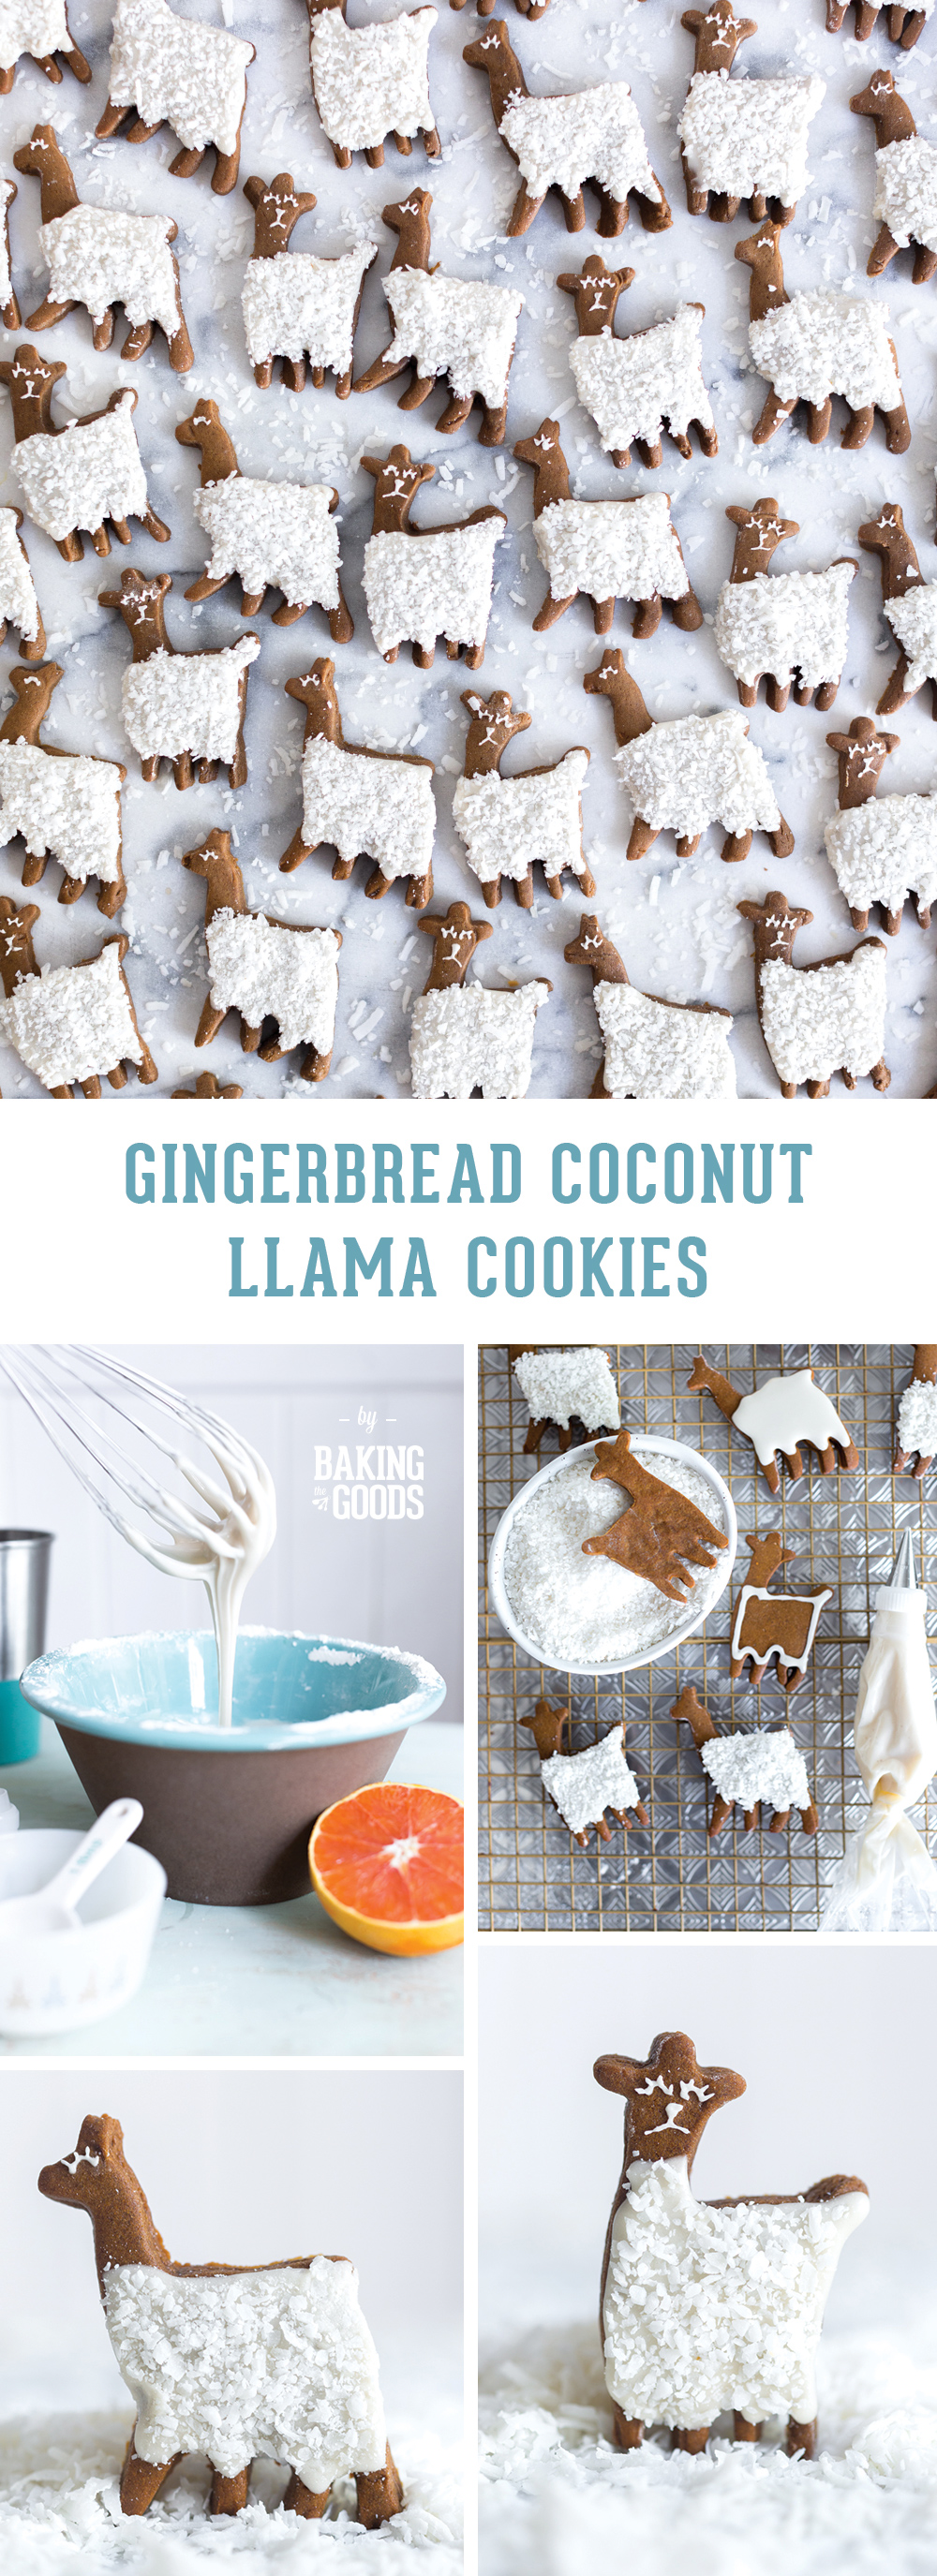 Gingerbread Coconut Llama Cookies by Baking The Goods